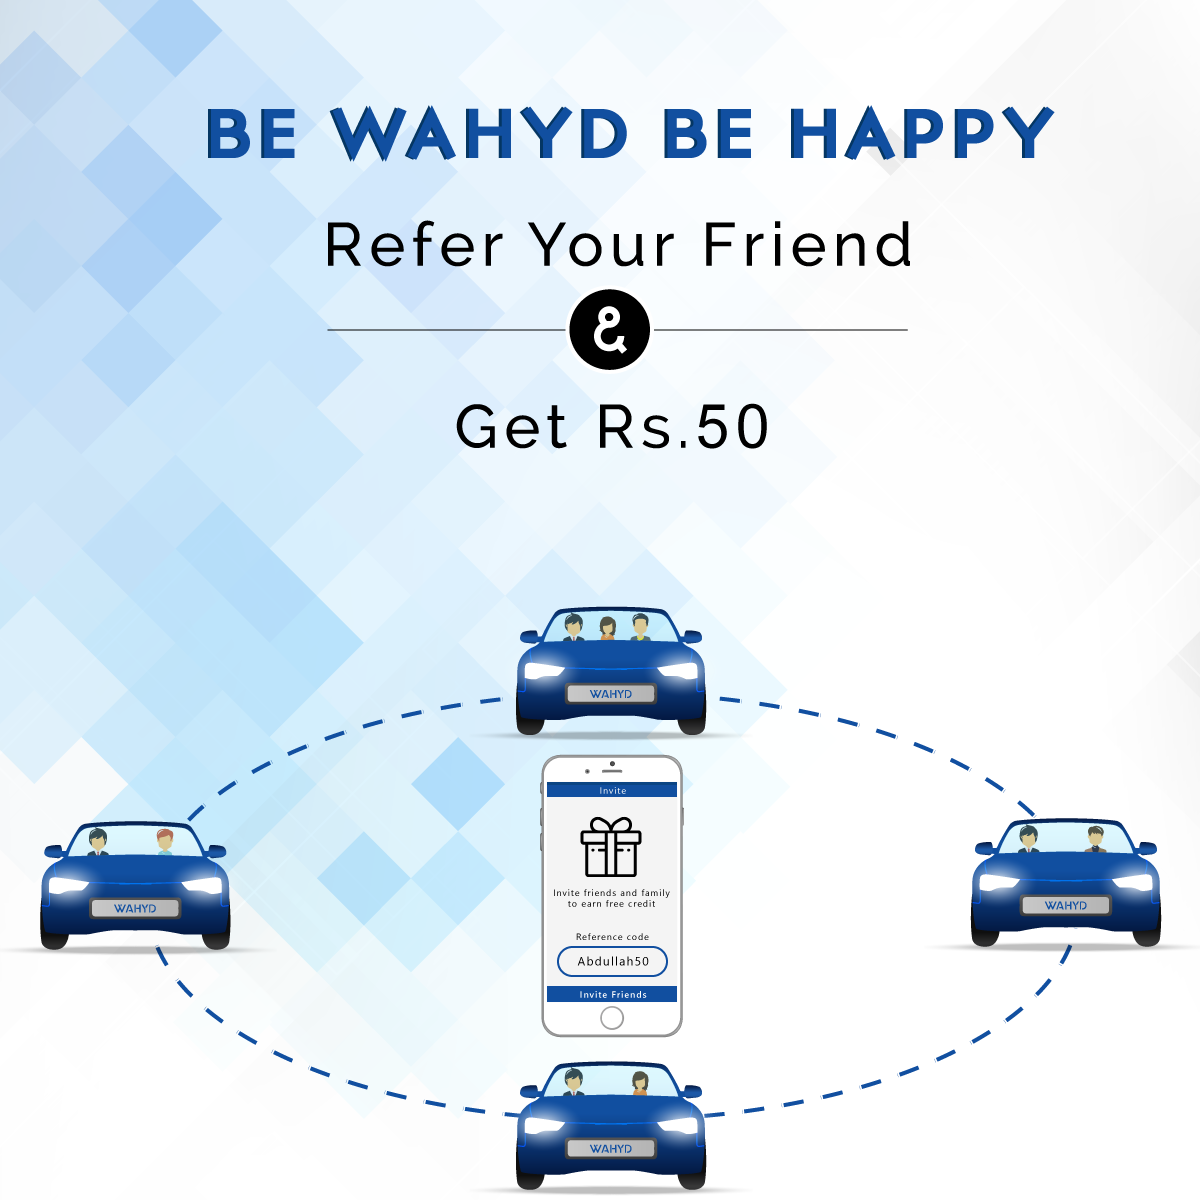 wahyd referral scheme